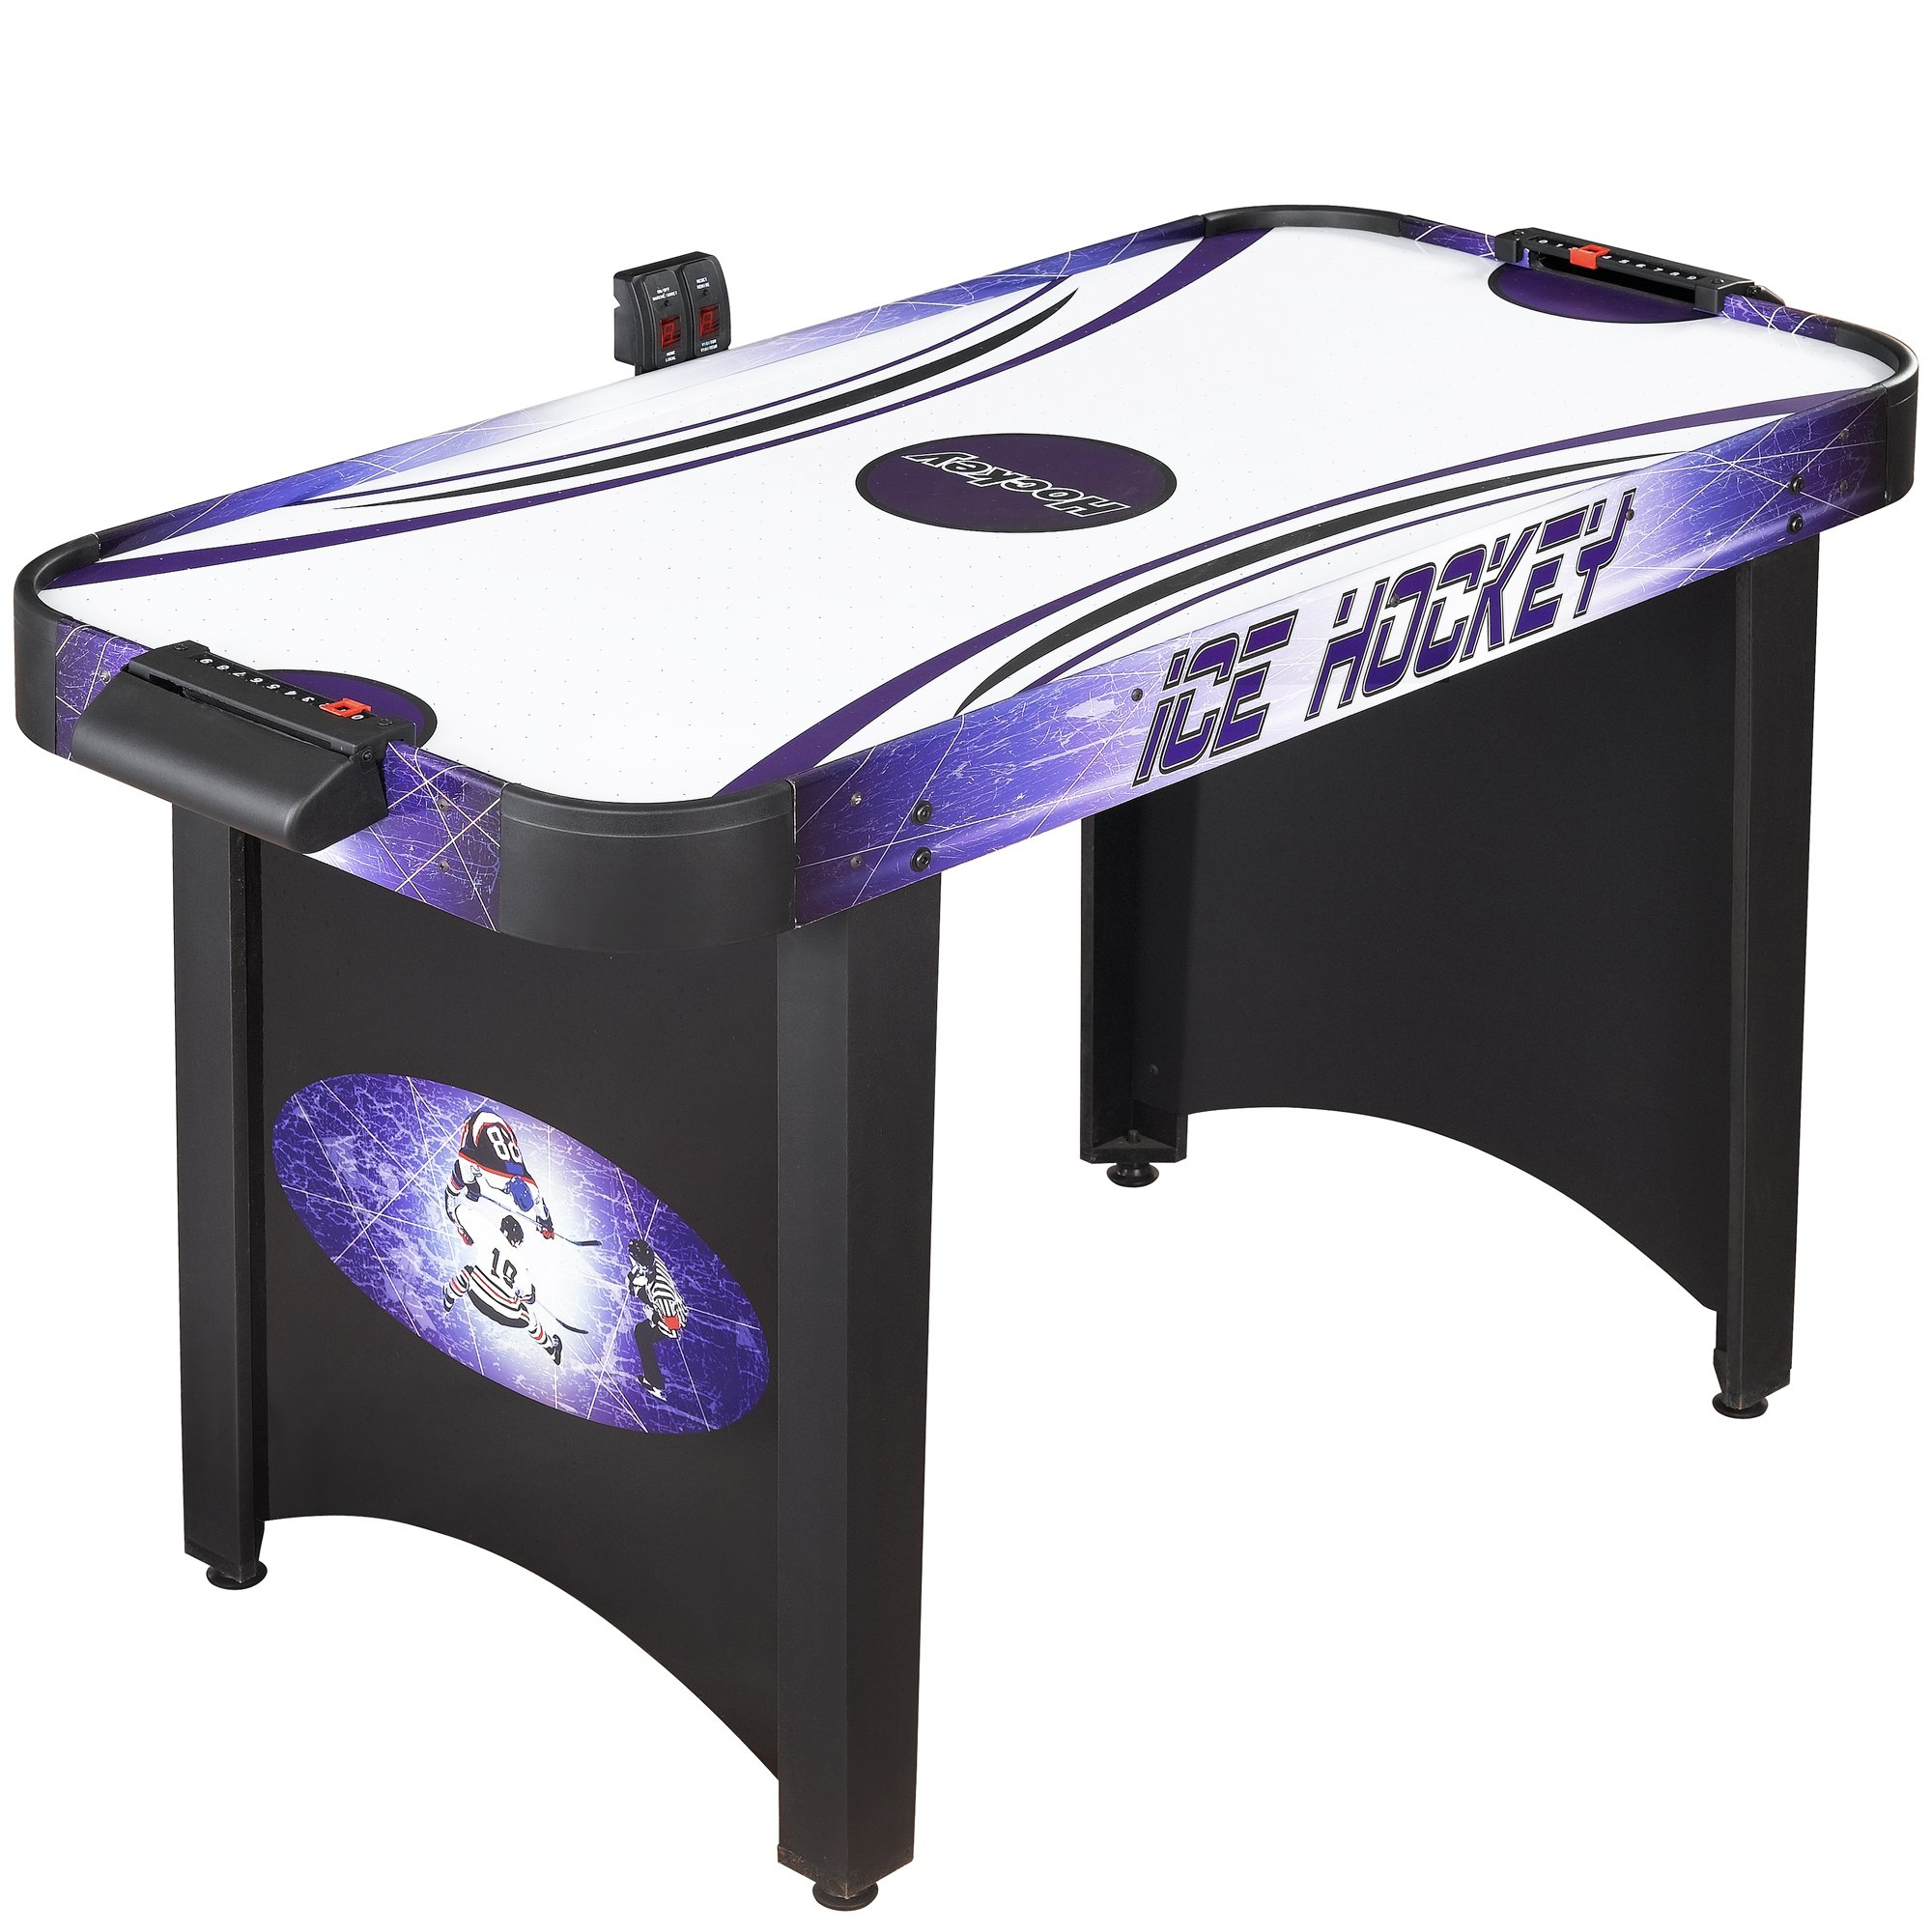 Hathaway Hat Trick 4-Ft Air Hockey Table for Kids and Adults with Electronic and Manual Scoring, Leg Levelers by Hathaway